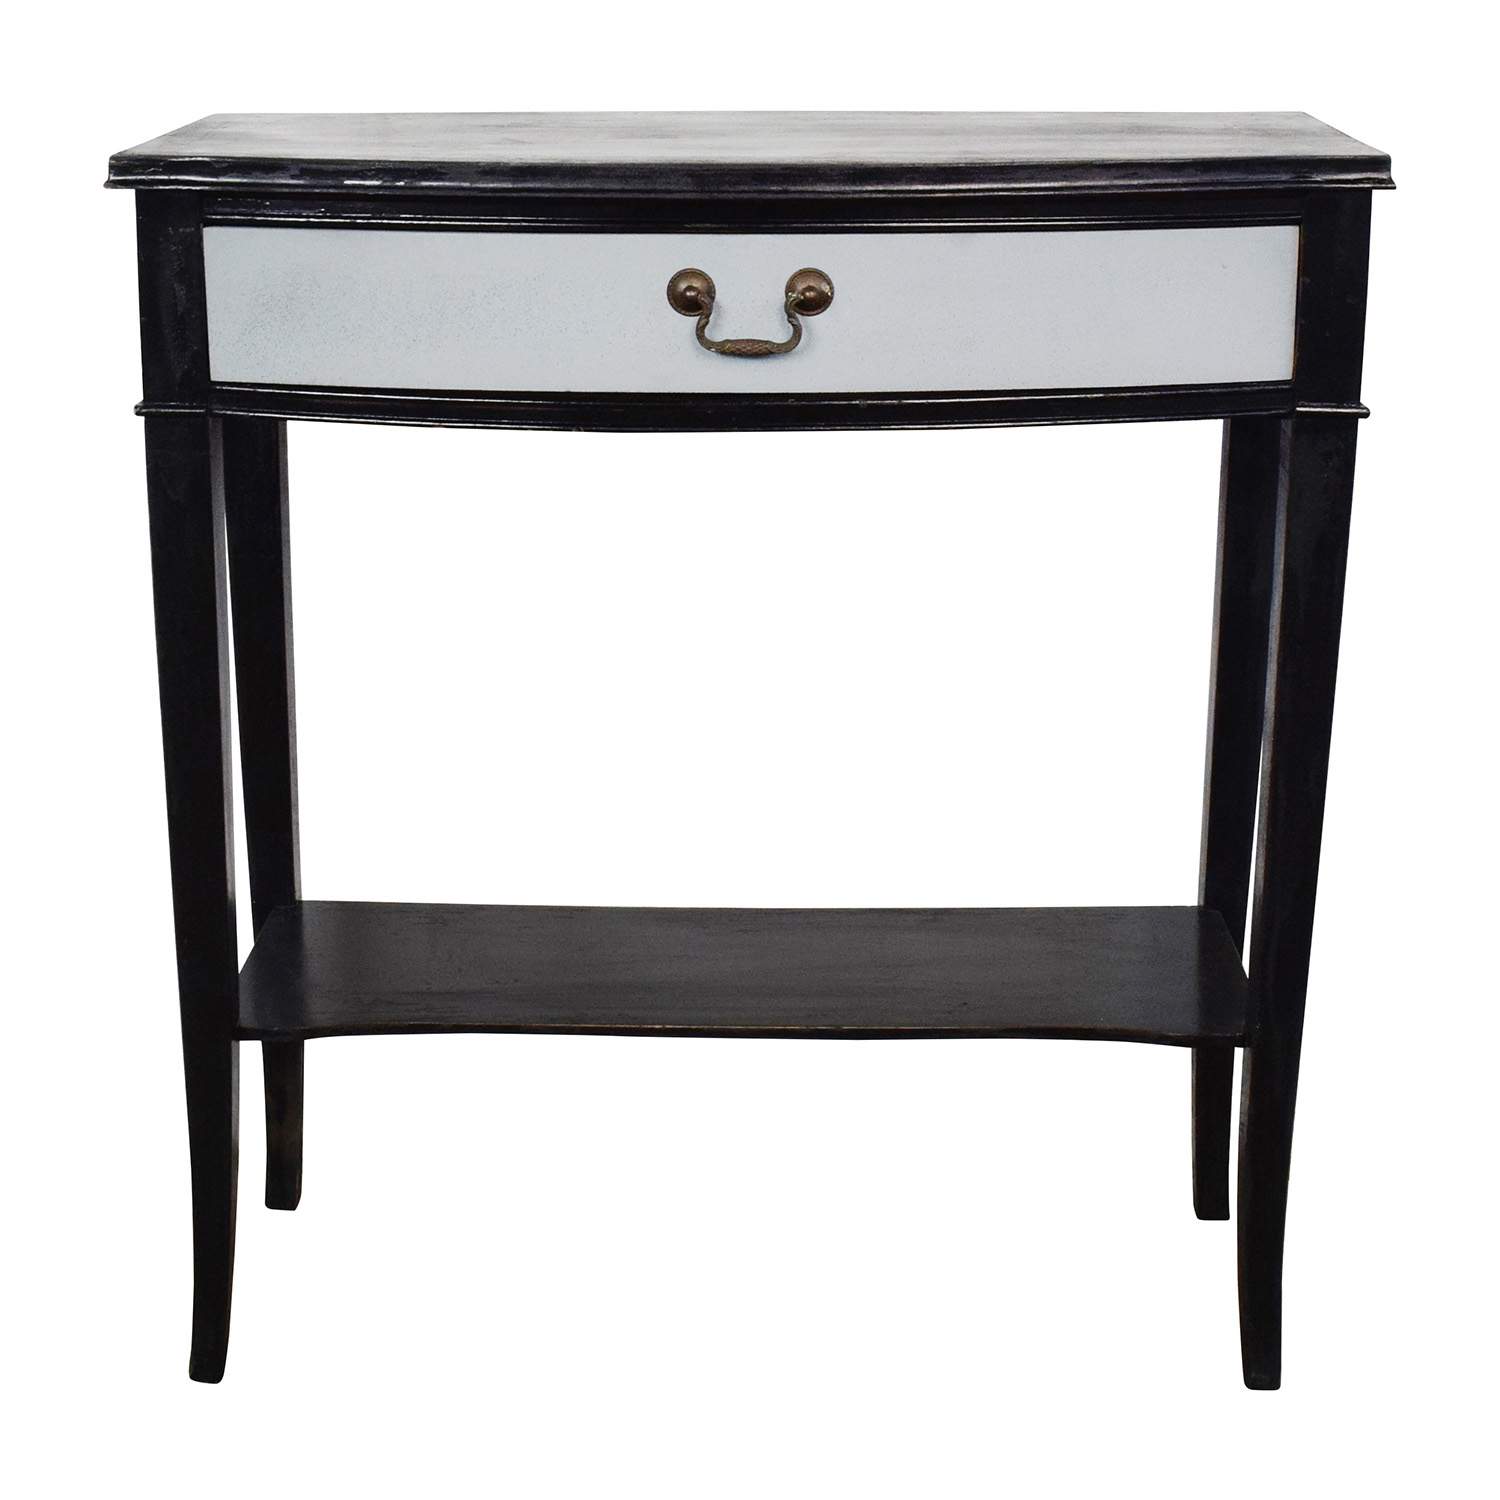 Etsy Etsy Vintage Black and Grey Console Table End Tables